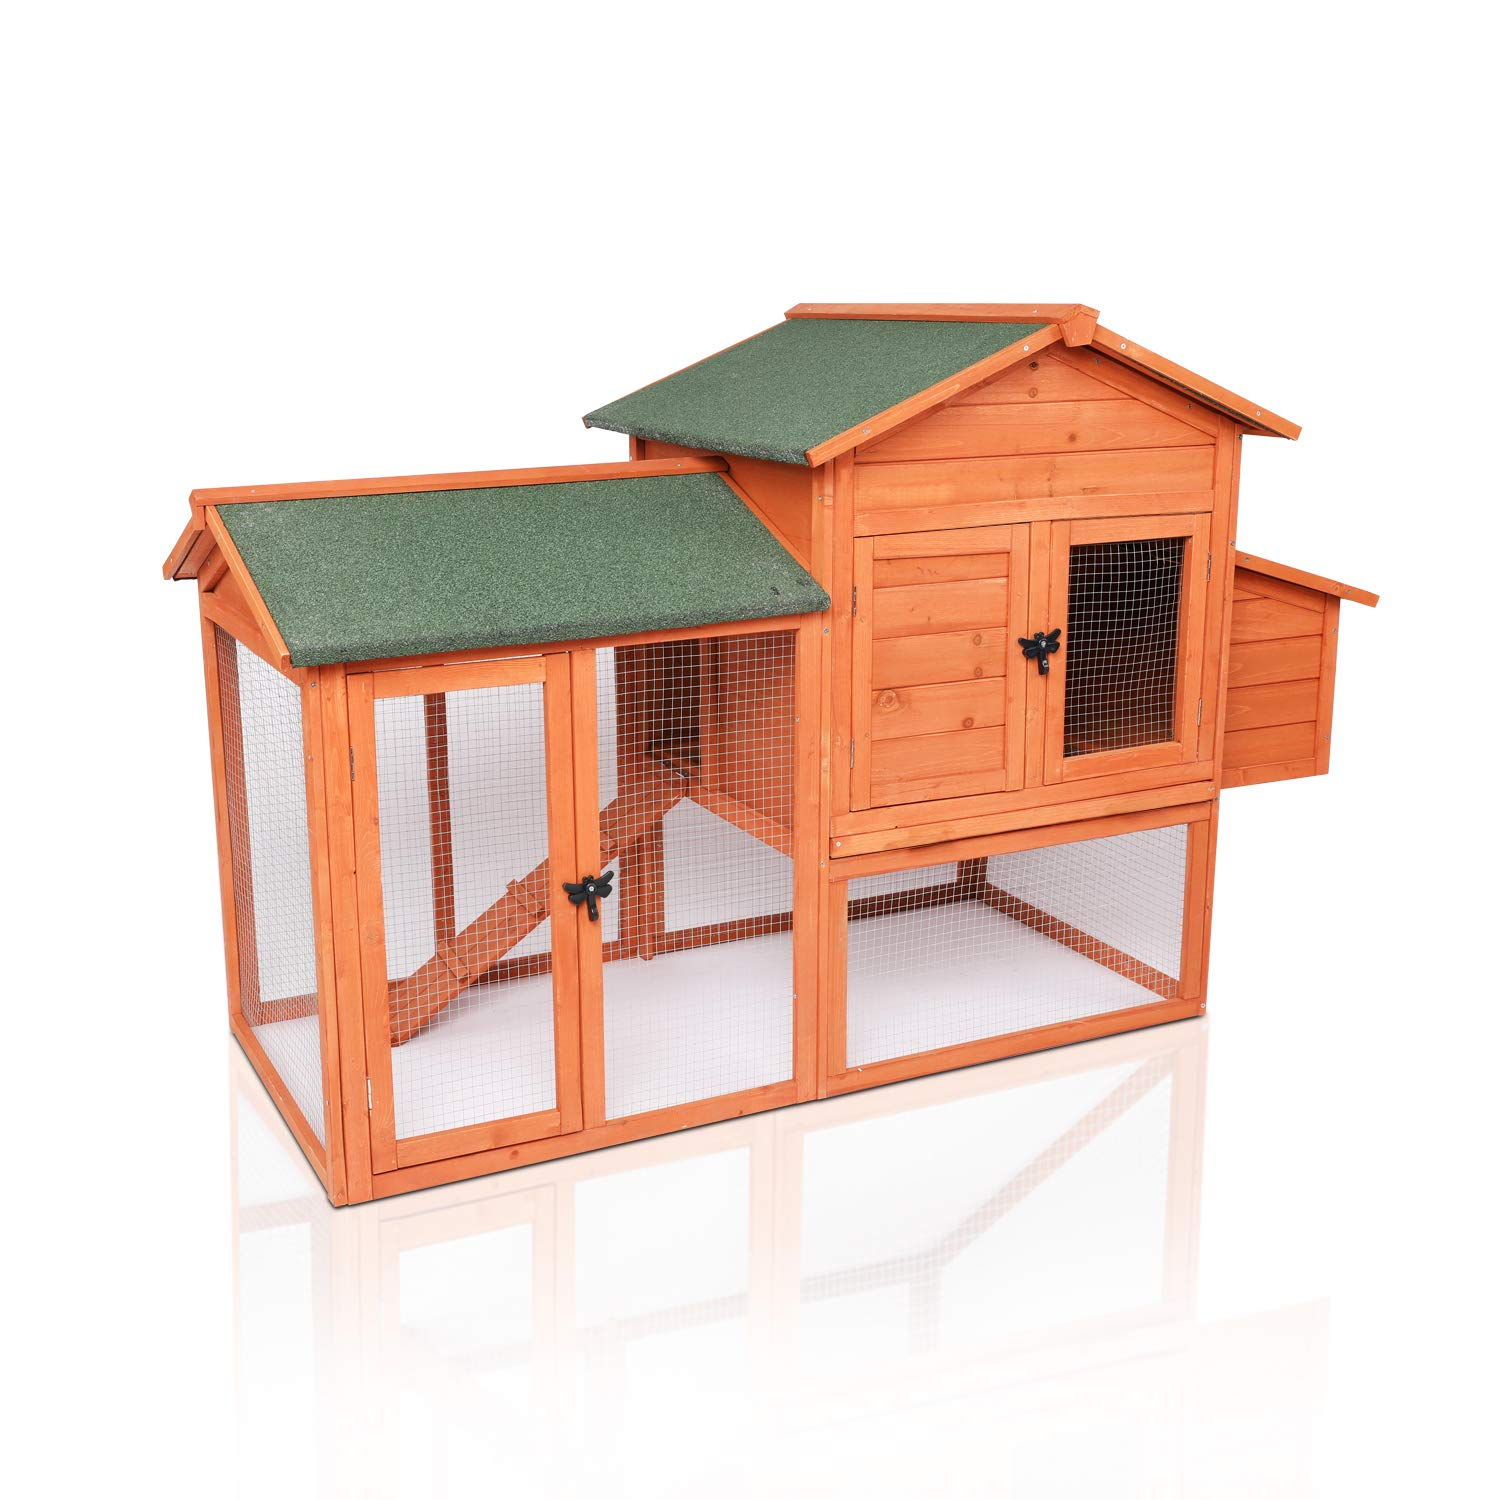 "LAZY BUDDY Chicken Coop, 41"" Wooden Chick Cage with Egg Box, Indoor and Outdoor Use Chicken Coop with Waterproof Roof for Chicken and Other Pets"